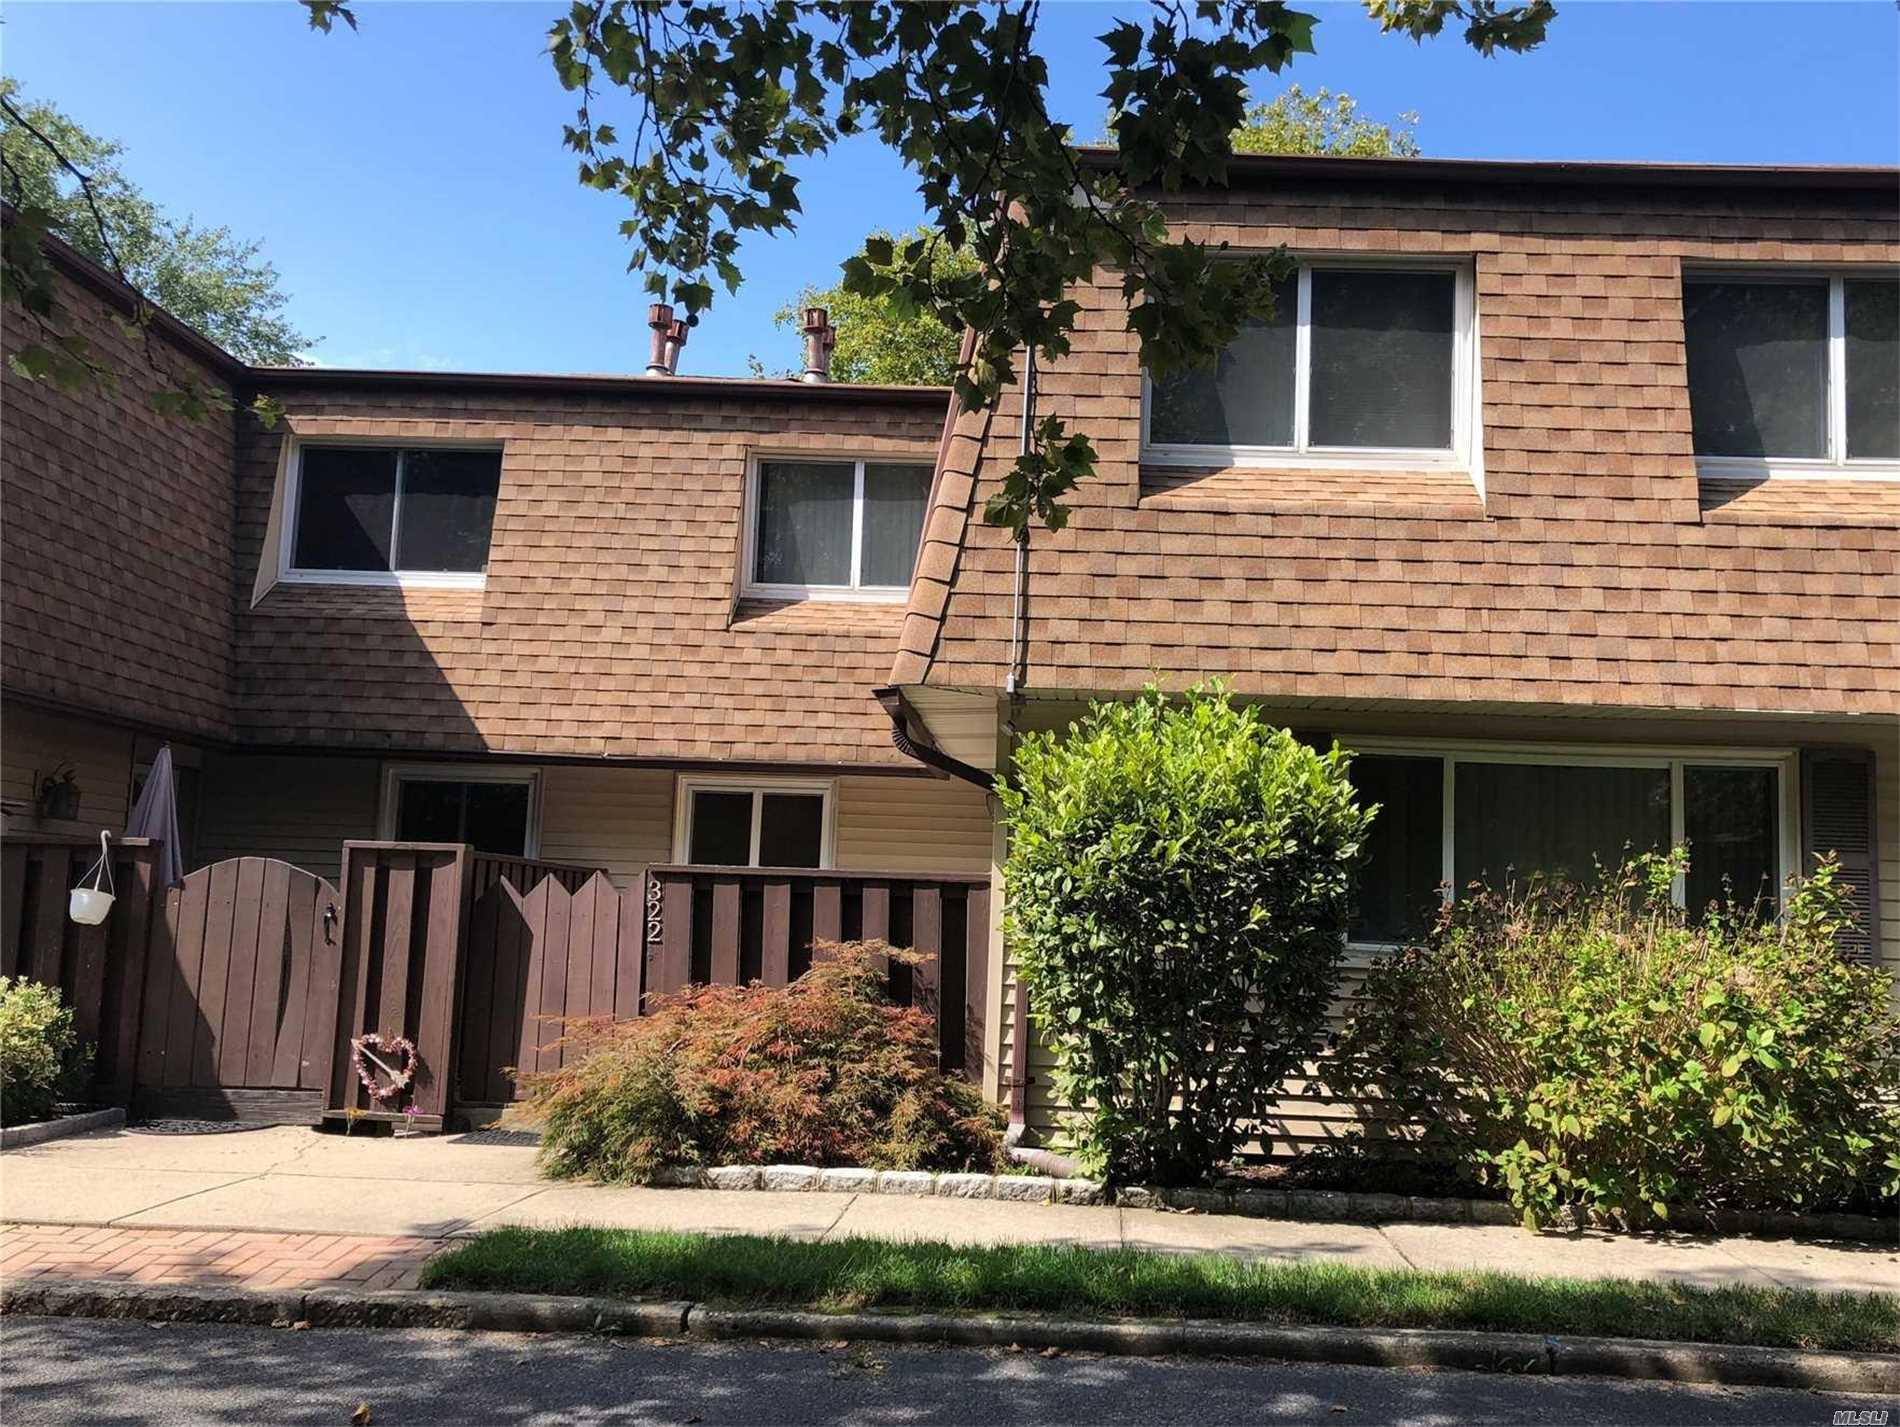 Property for sale at 322 Feller Dr, Central Islip,  NY 11722